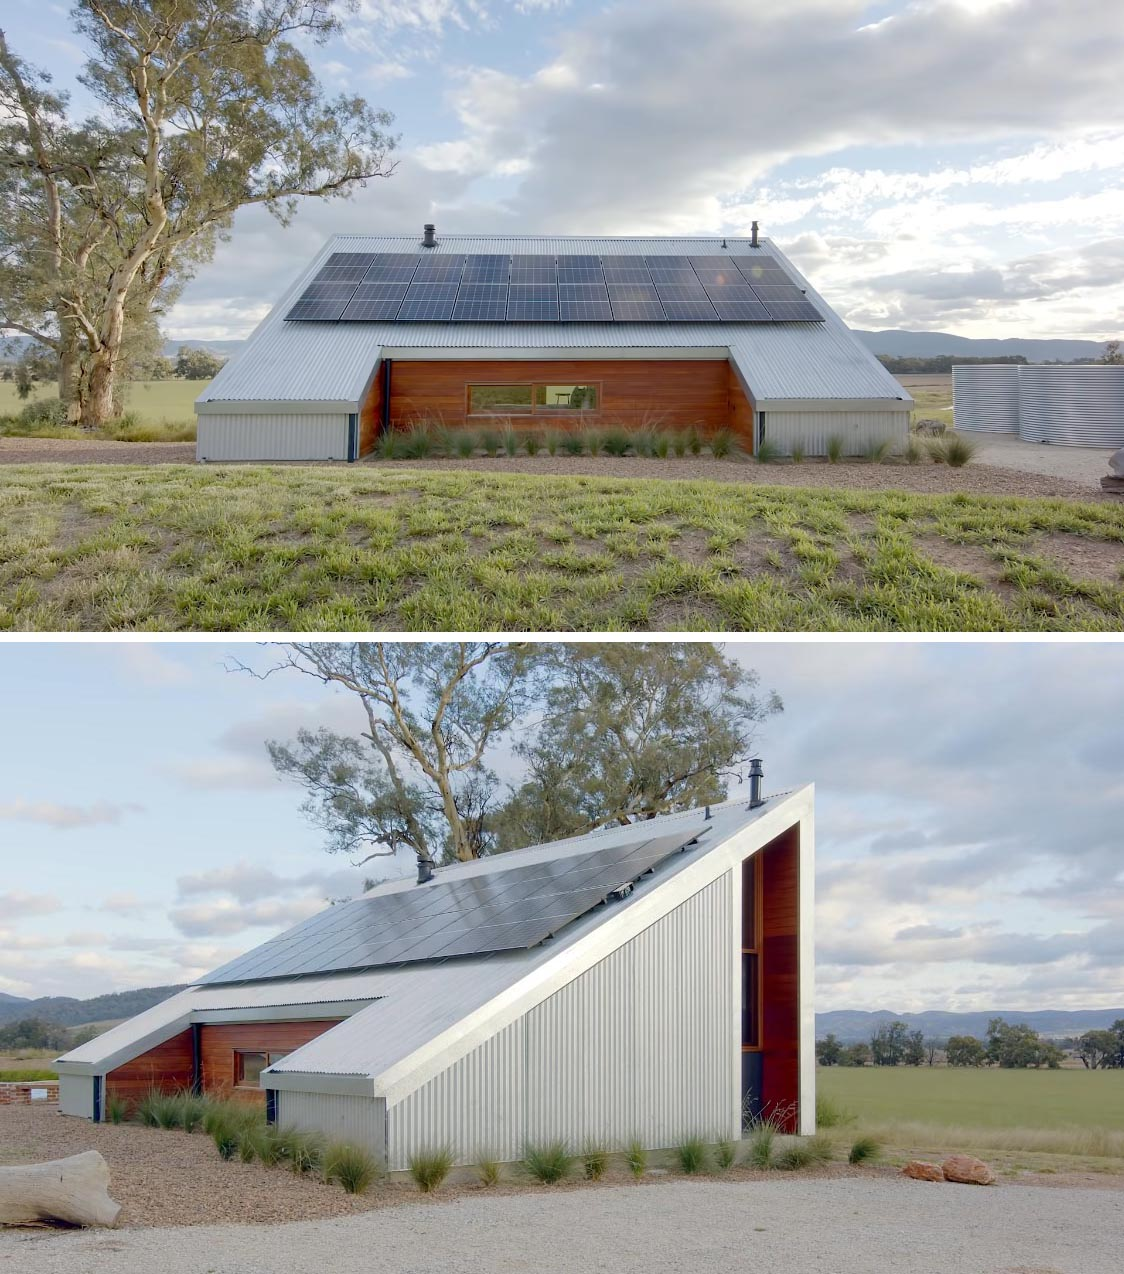 The design of this off-grid tiny house has corrugated metal siding and a 30 degree roof, that allows for solar panels.